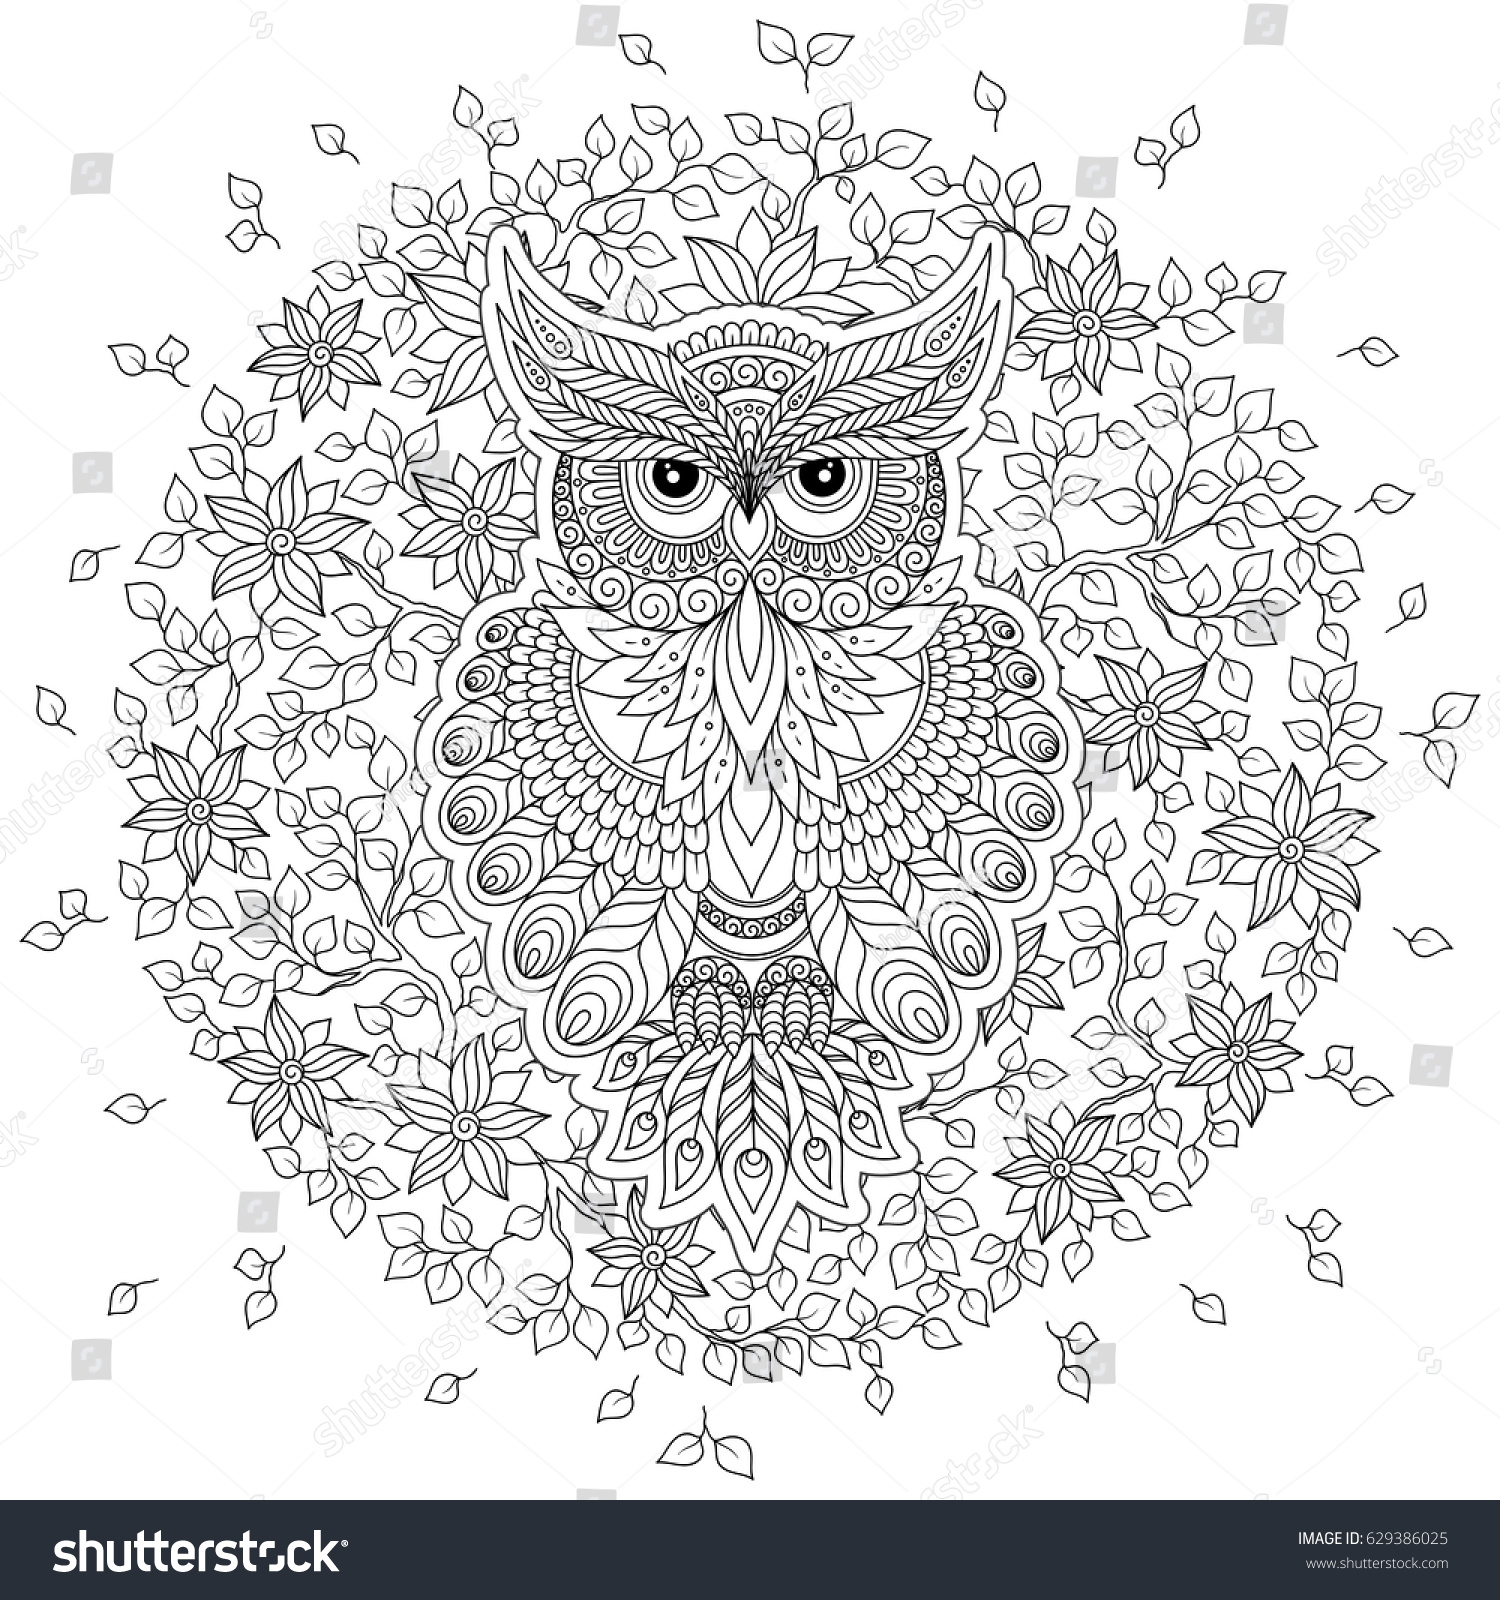 coloring book older children coloring stock vector 629386025